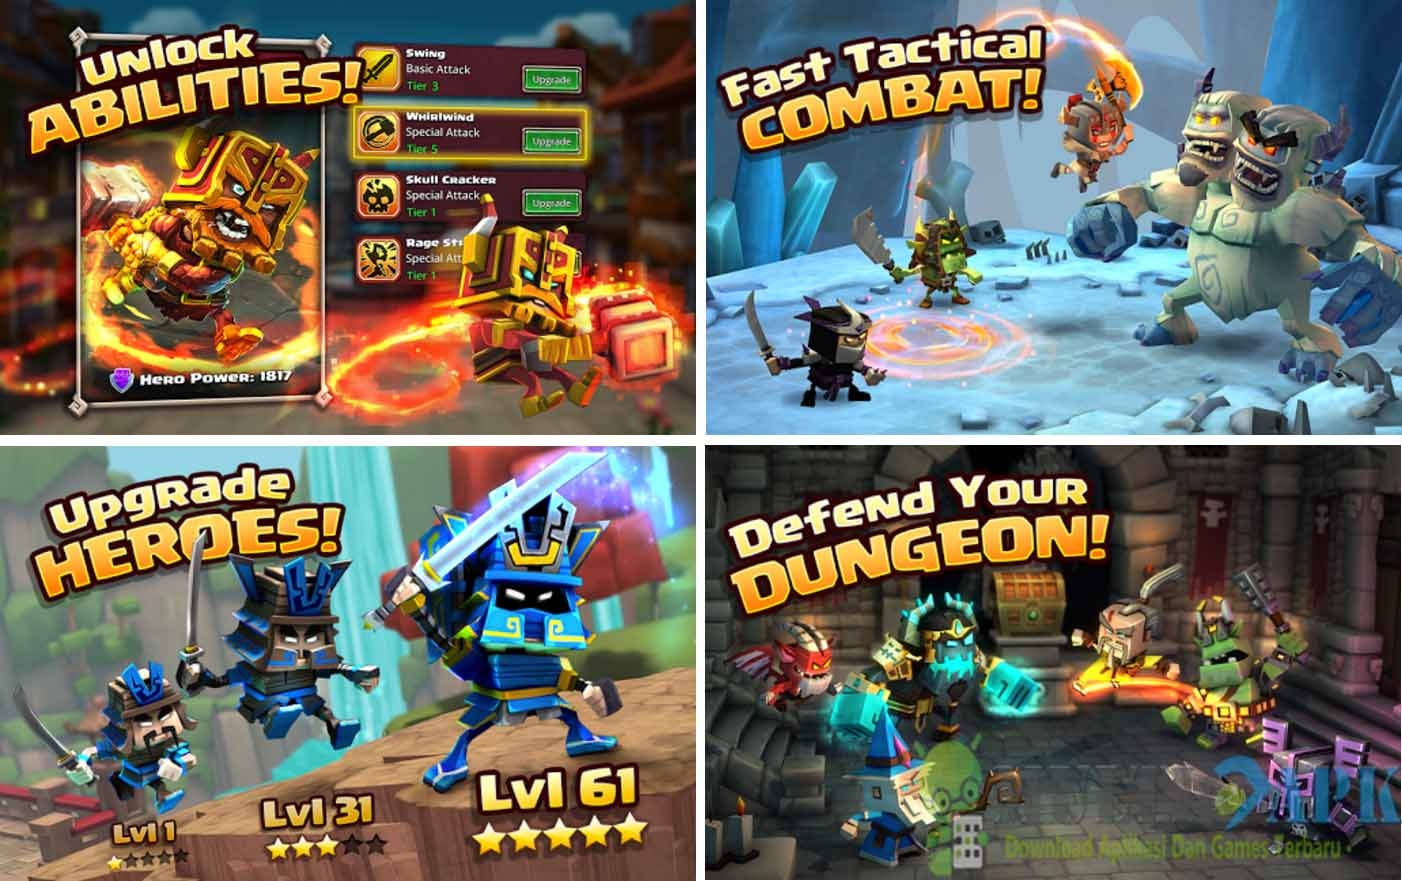 Dungeon Boss Mod v0.5.8557 Apk (God Mode)